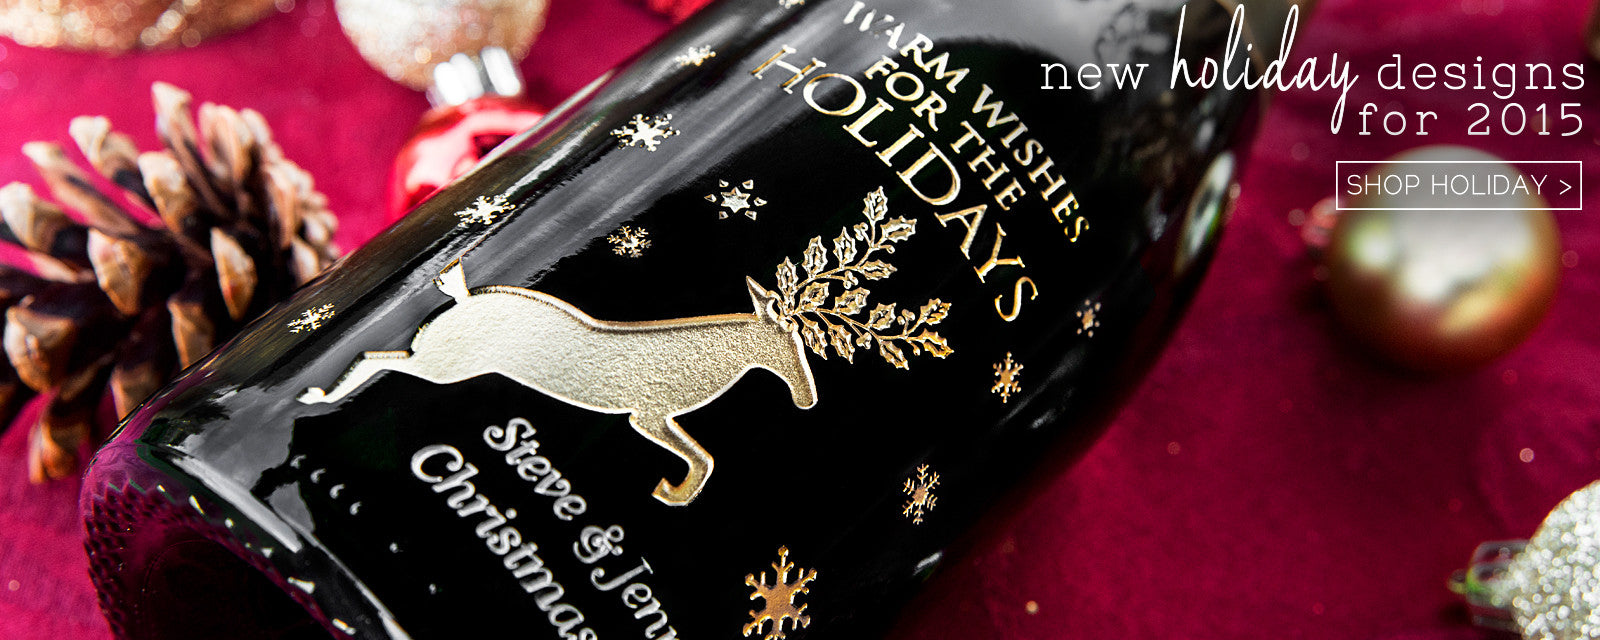 Shop Holiday Etched Wines